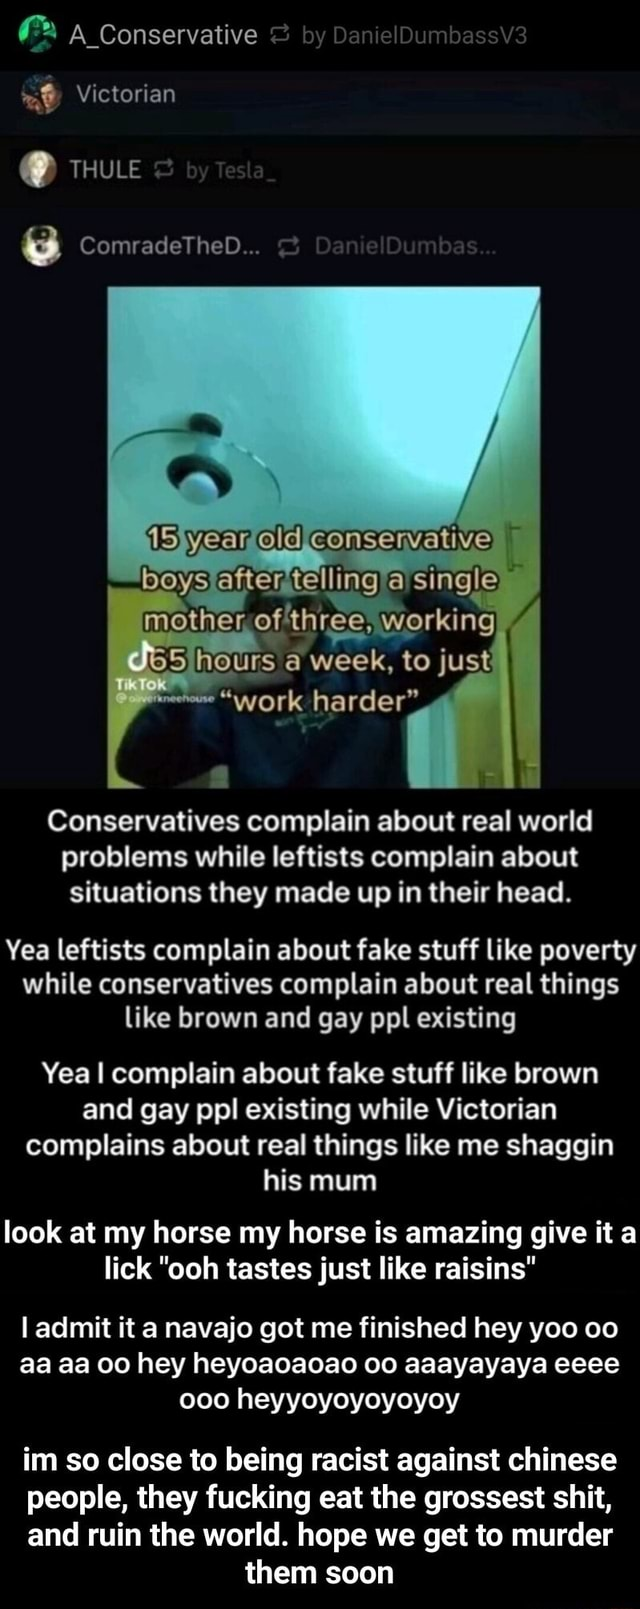 Conservative by Dan elOumbassV3 Victorian THULE ComradeTheD iSyear eld Consenvative boys efter tellinga si mother, ofthree, working a week, work harder Conservatives complain about real world problems while leftists complain about Situations they mace up in their head. Yea leftists complain about fake stuff like poverty while conservatives complain about real things like brown and gay ppl existing Yea I complain about fake stuff like brown and gay pol existing while Victorian complains about real things like me shaggin his mum look at my horse my horse is amazing give it a lick ooh tastes just like raisins I admit it a navajo got me finished hey yoo oo aa aa 00 hey heyoaoaoao aaayayaya eeee ooo heyyoyoyoyoyoy im so close to being racist against chinese people, they fucking eat the grossest